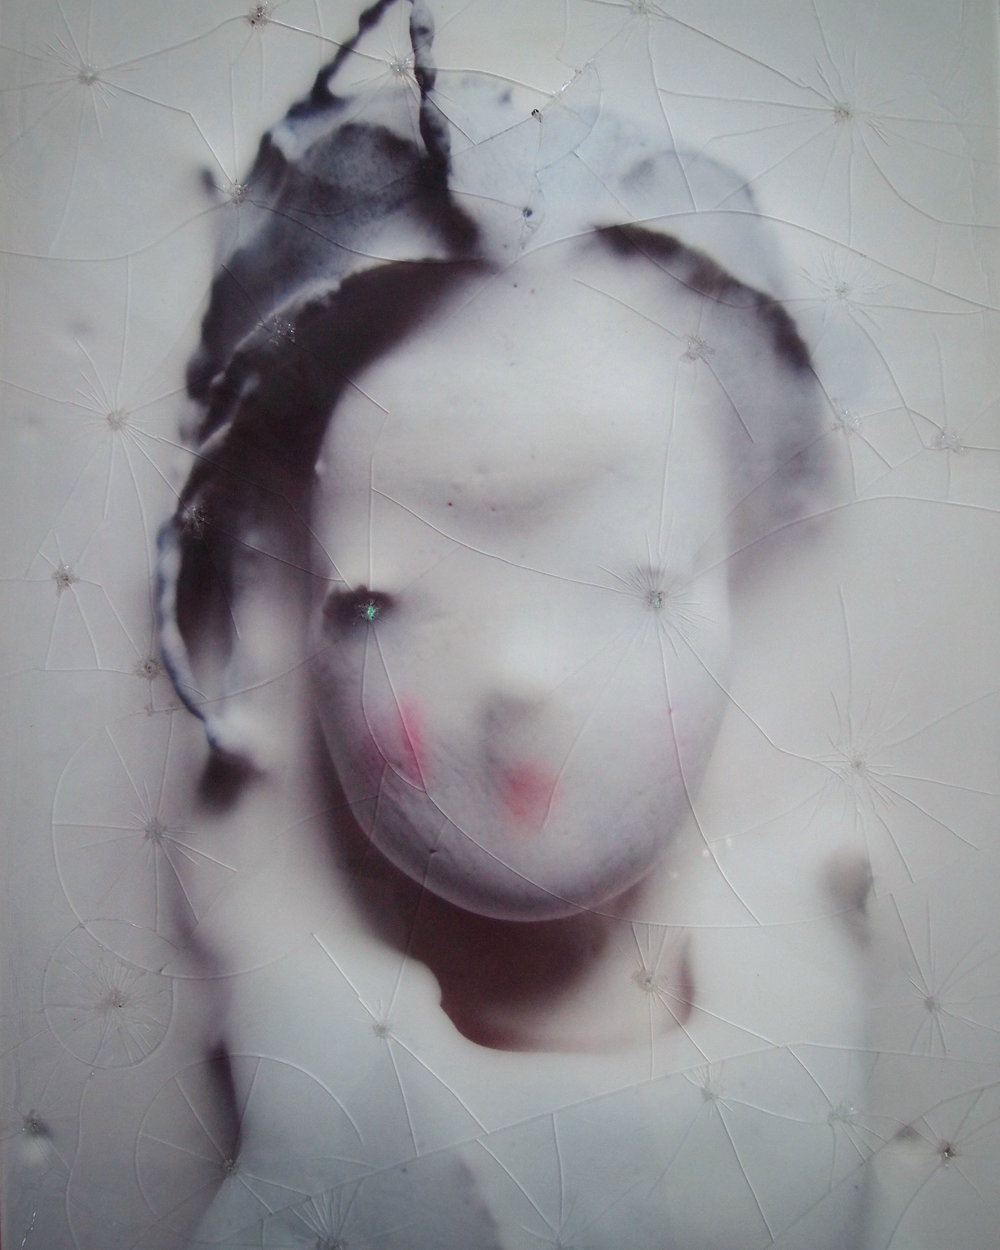 <b>marnie (glass chrysanthemum)</b><br>original photo back printed onto glass, spray paint, acrylic medium <br>29 x 22 in.